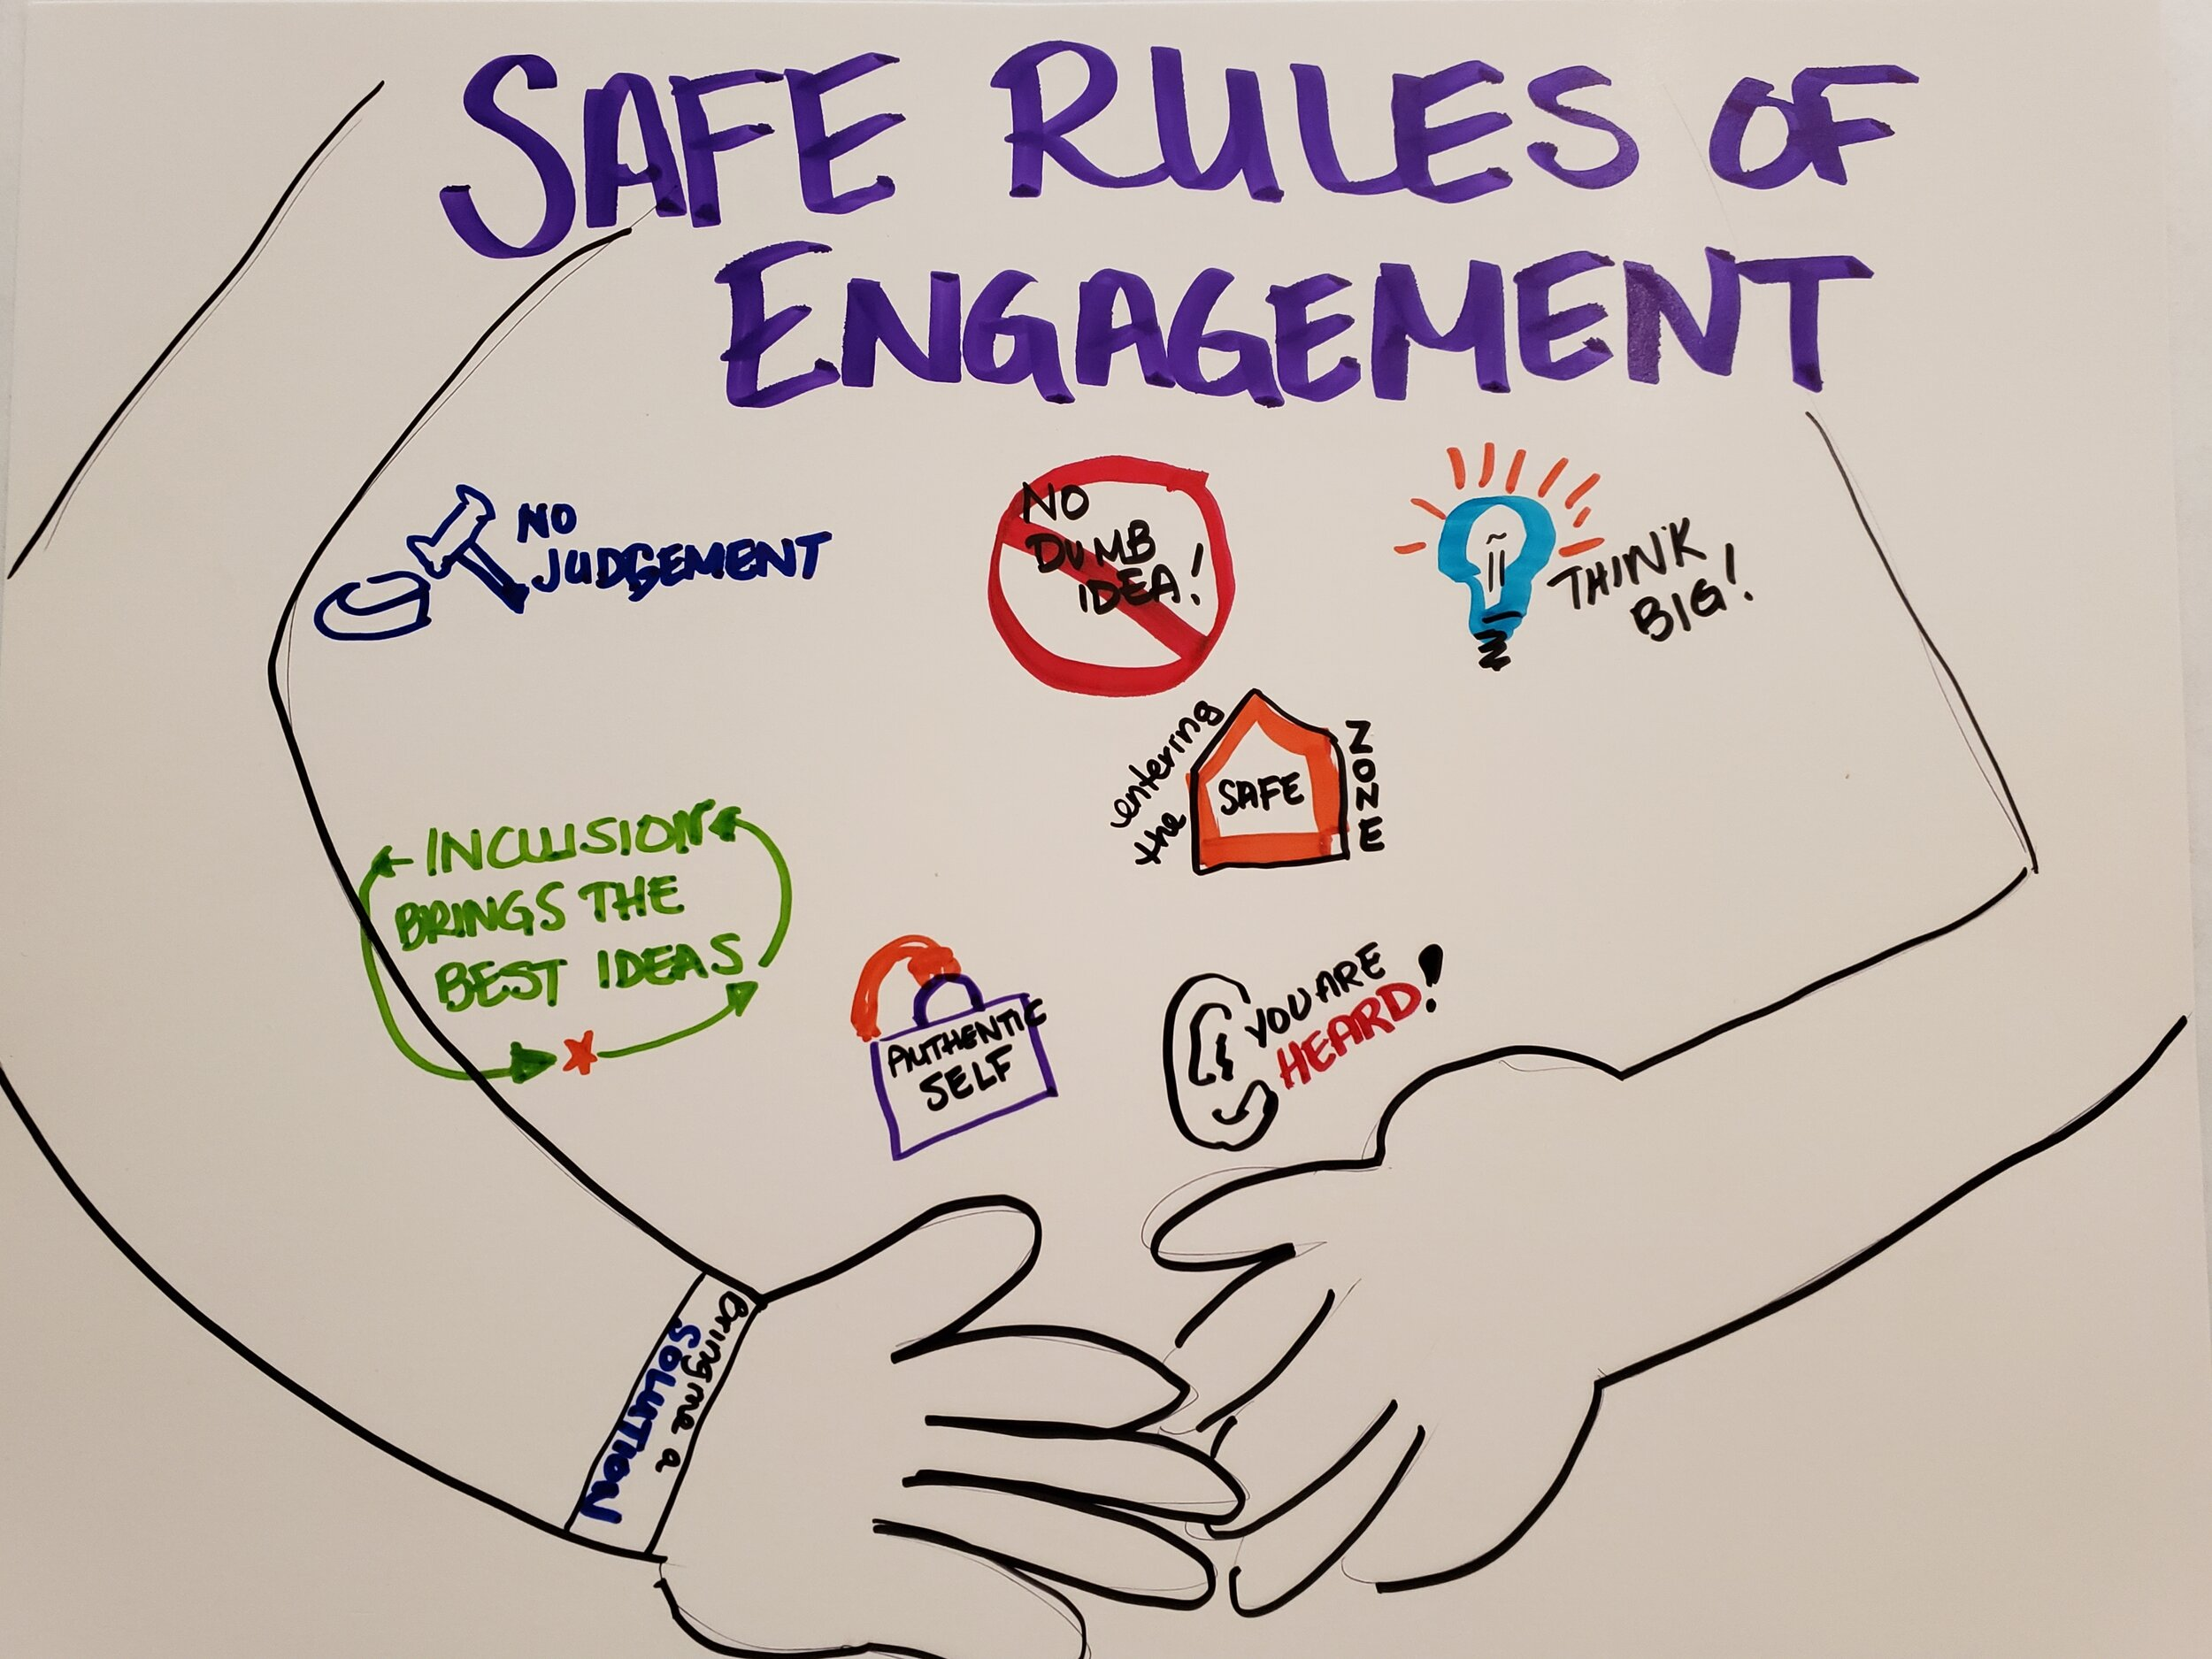 Safe Rules of Engagement